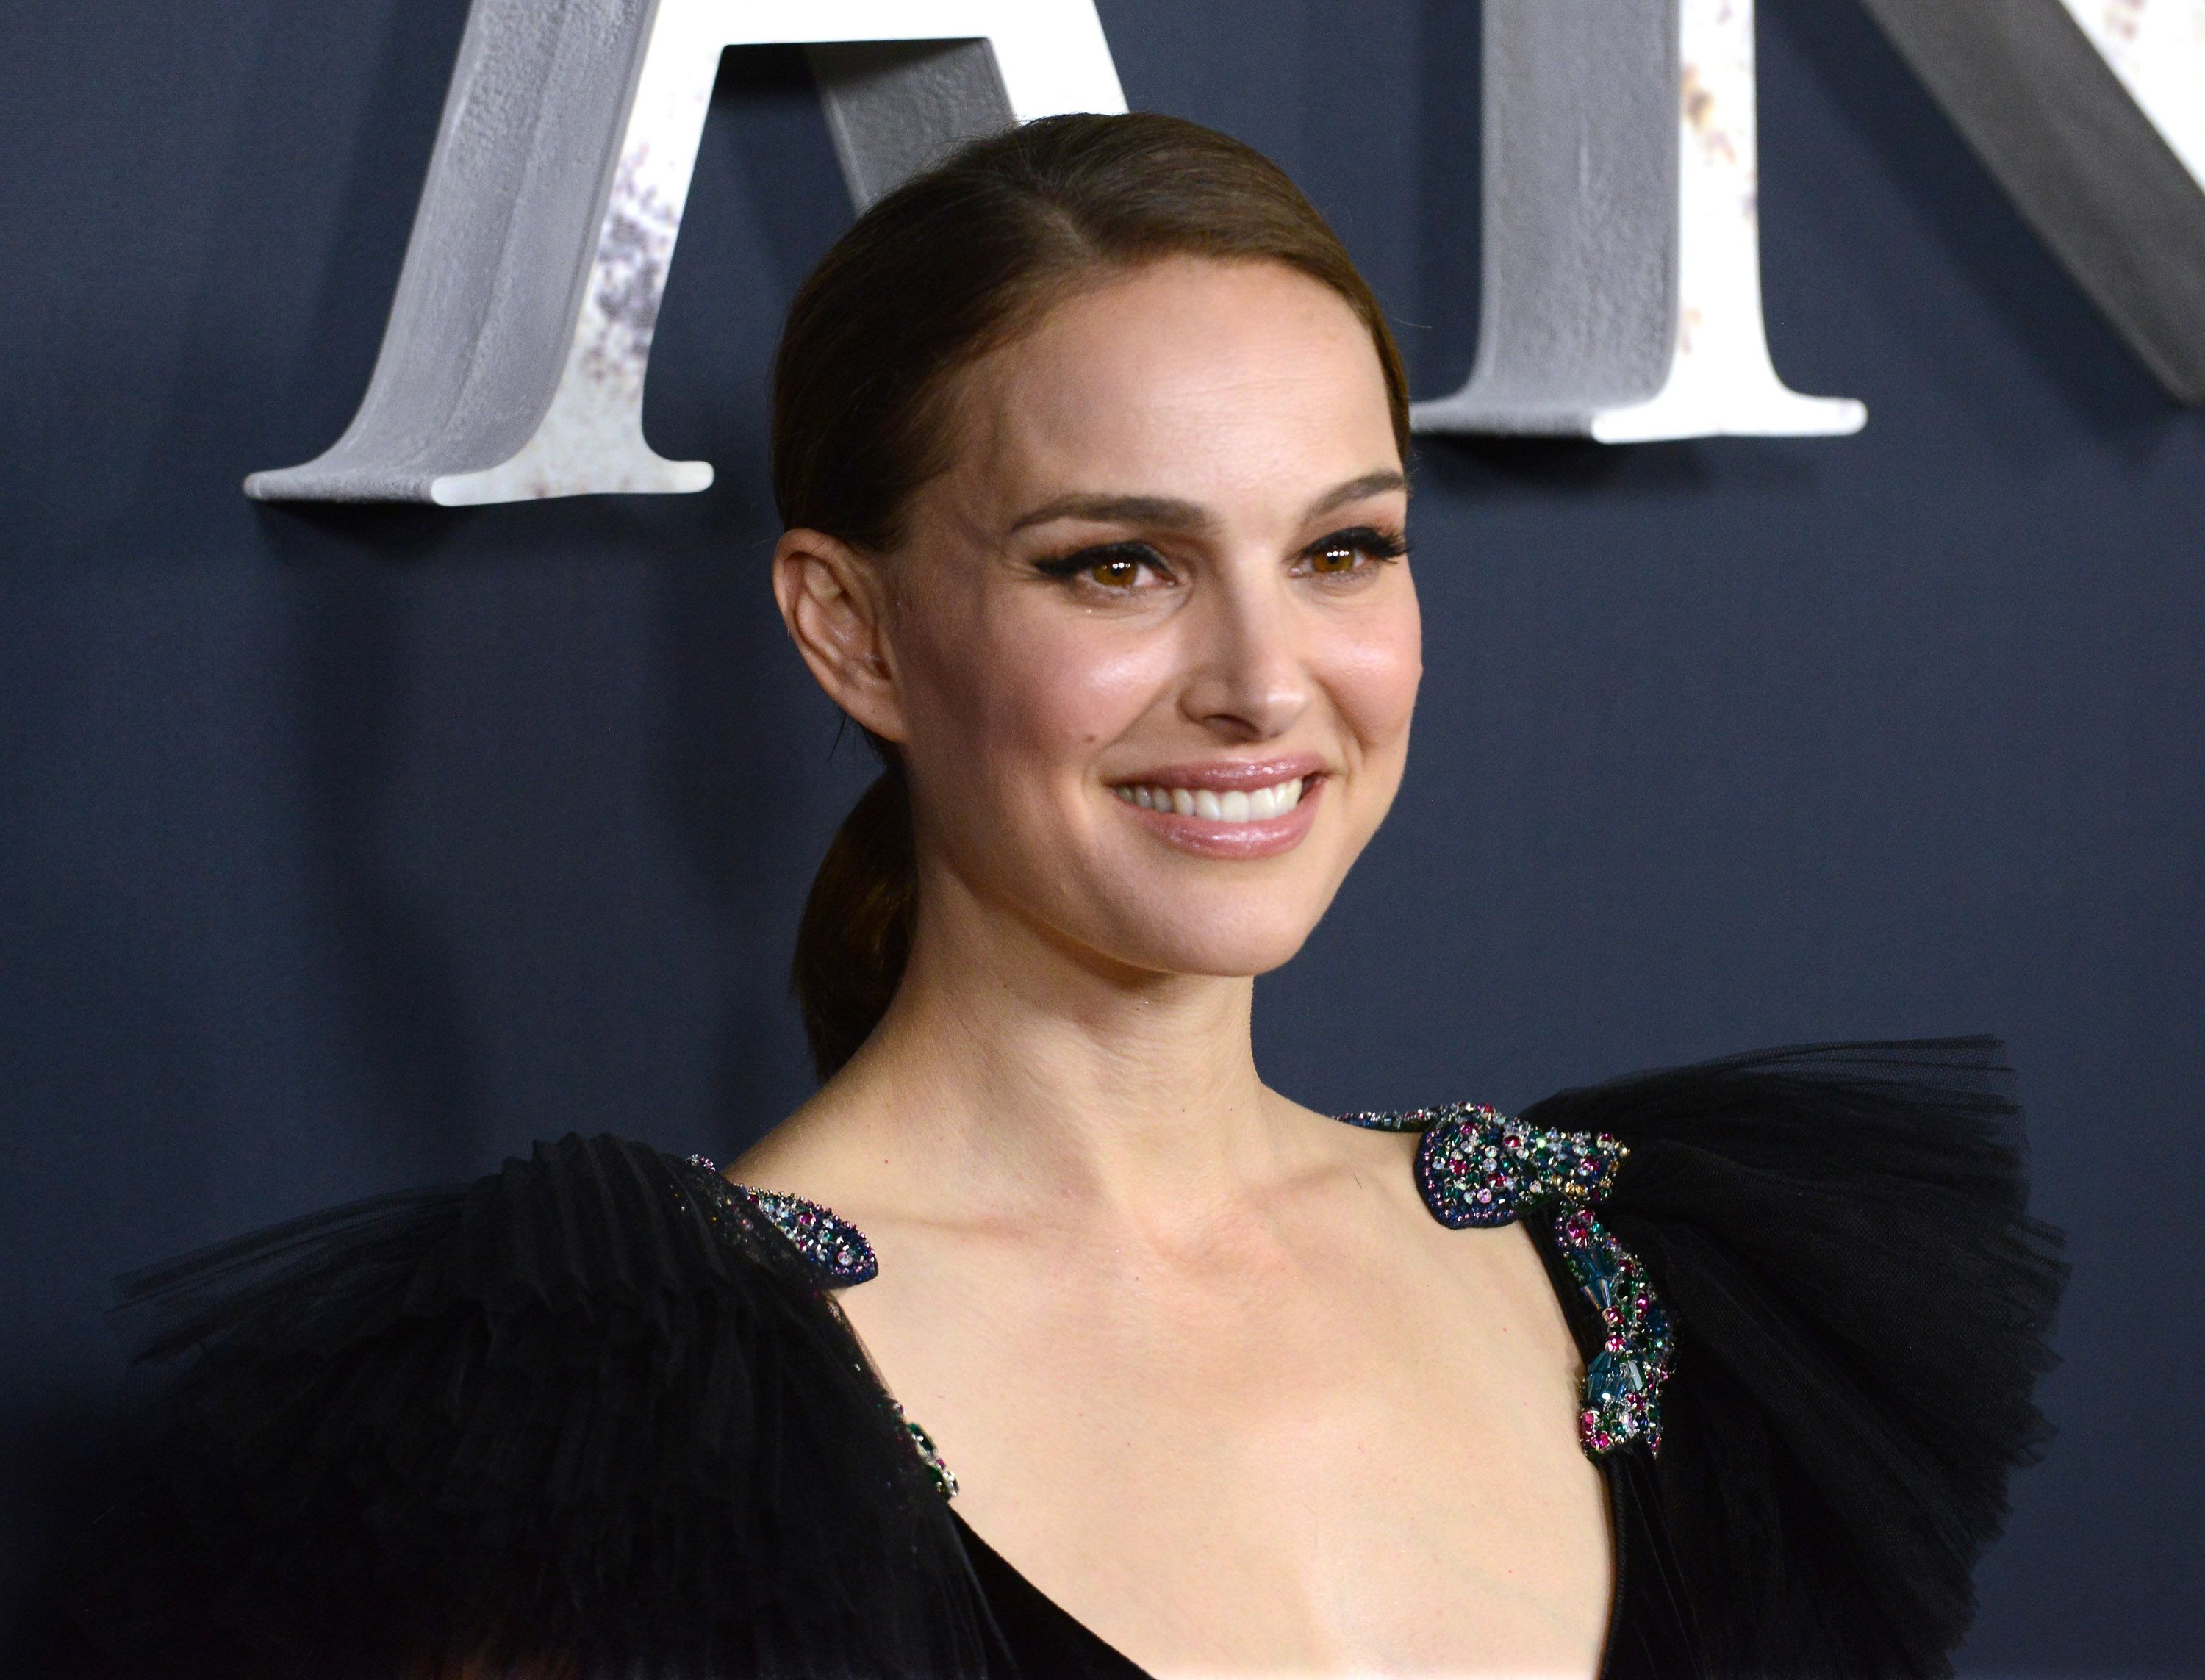 Natalie Portman Takes On 'Annihilation' Whitewashing Accusations